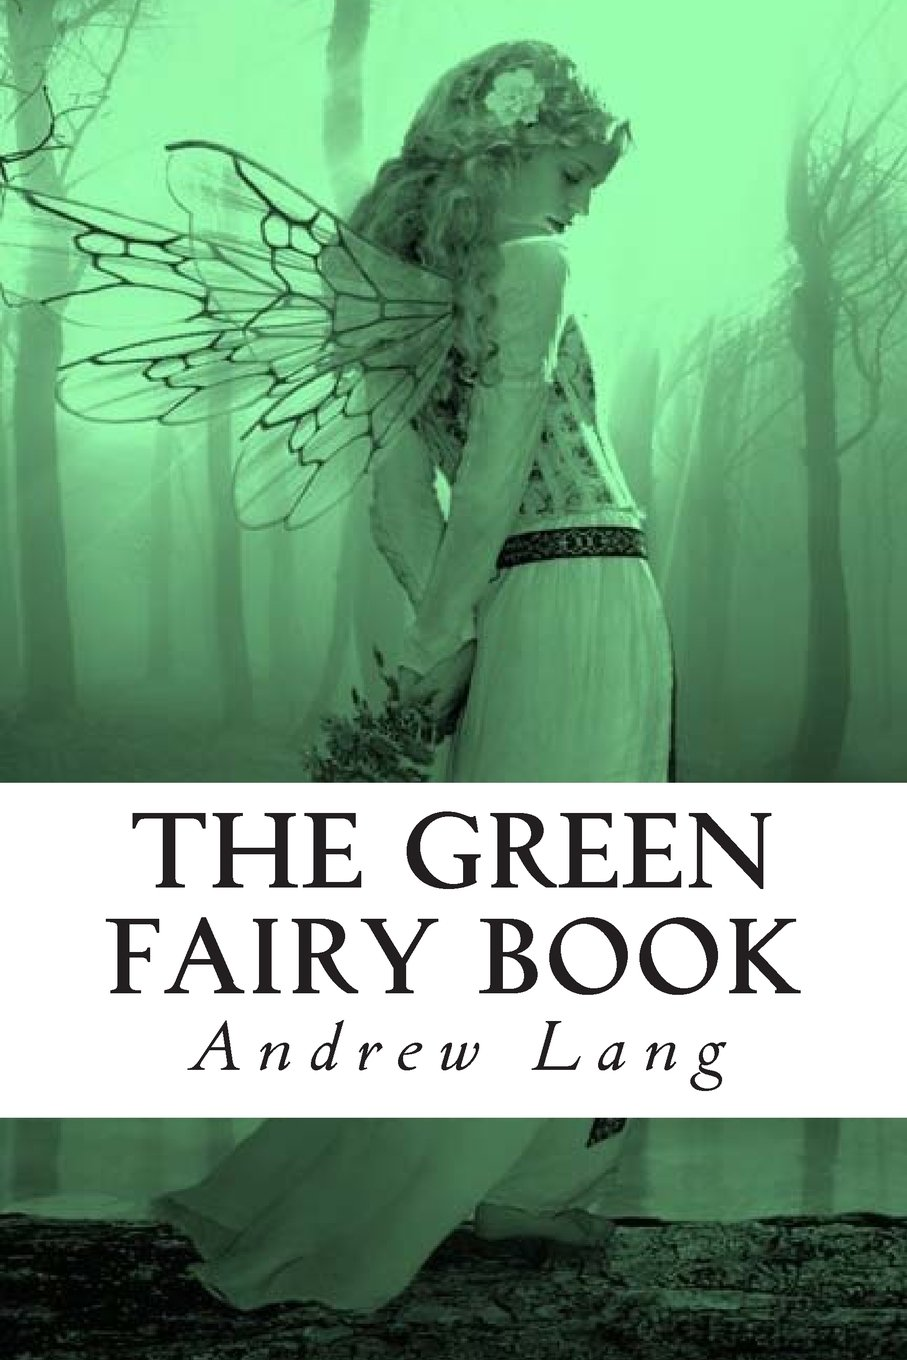 The Green Fairy Book (The Fairy Book Tales) PDF